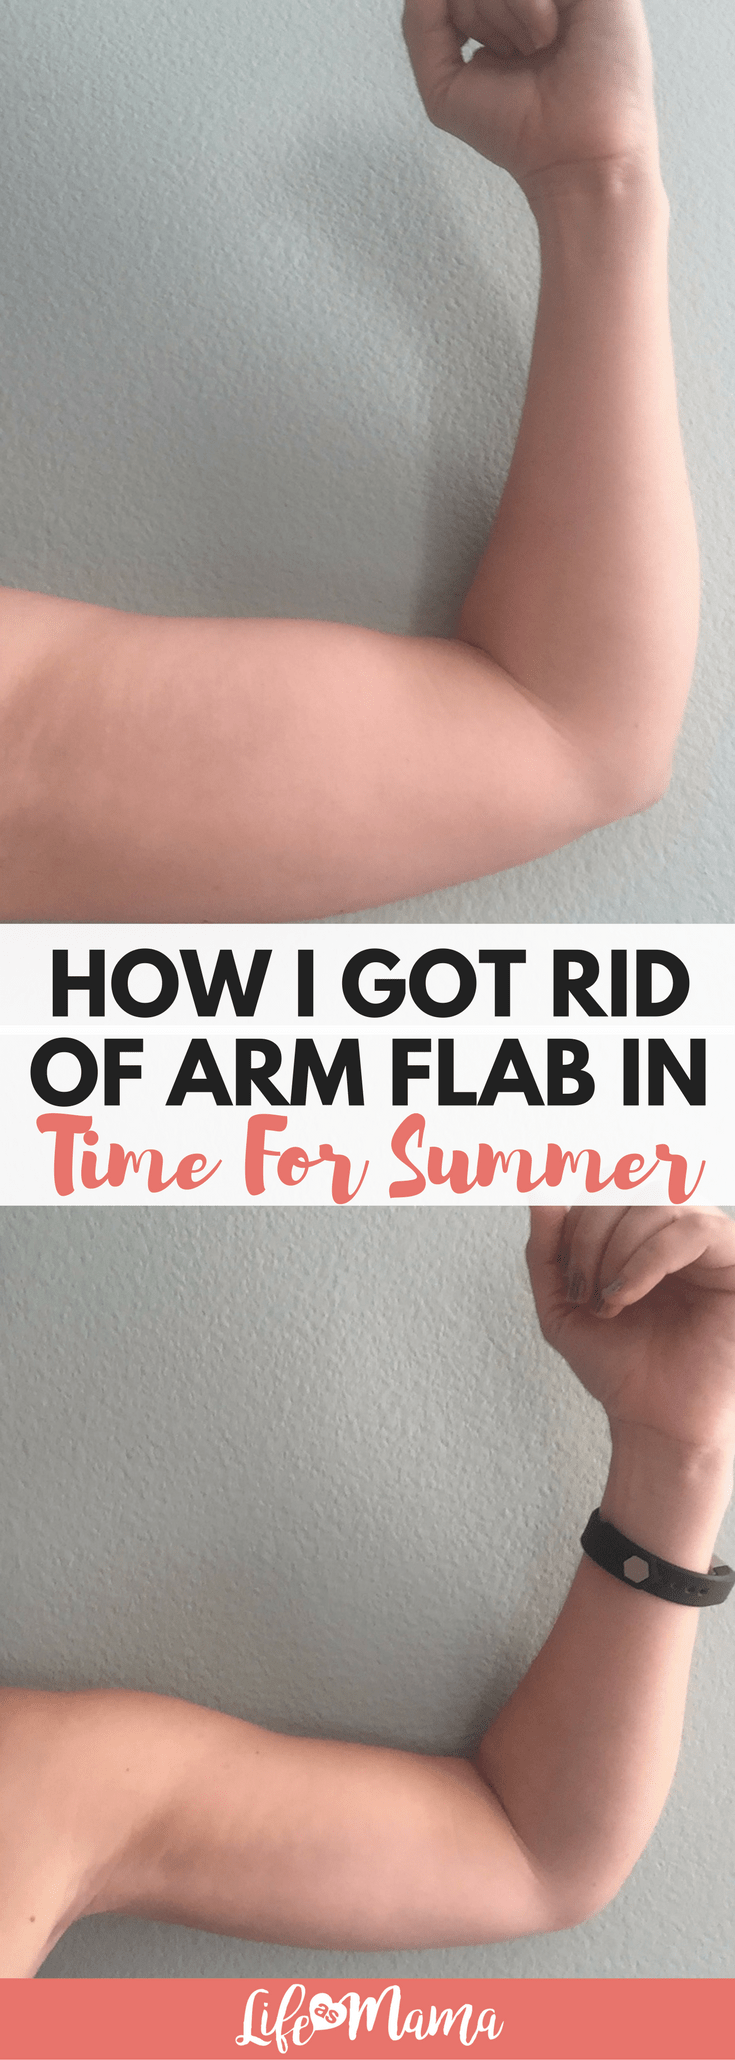 How i got rid of arm flab in time for summer goals pinterest